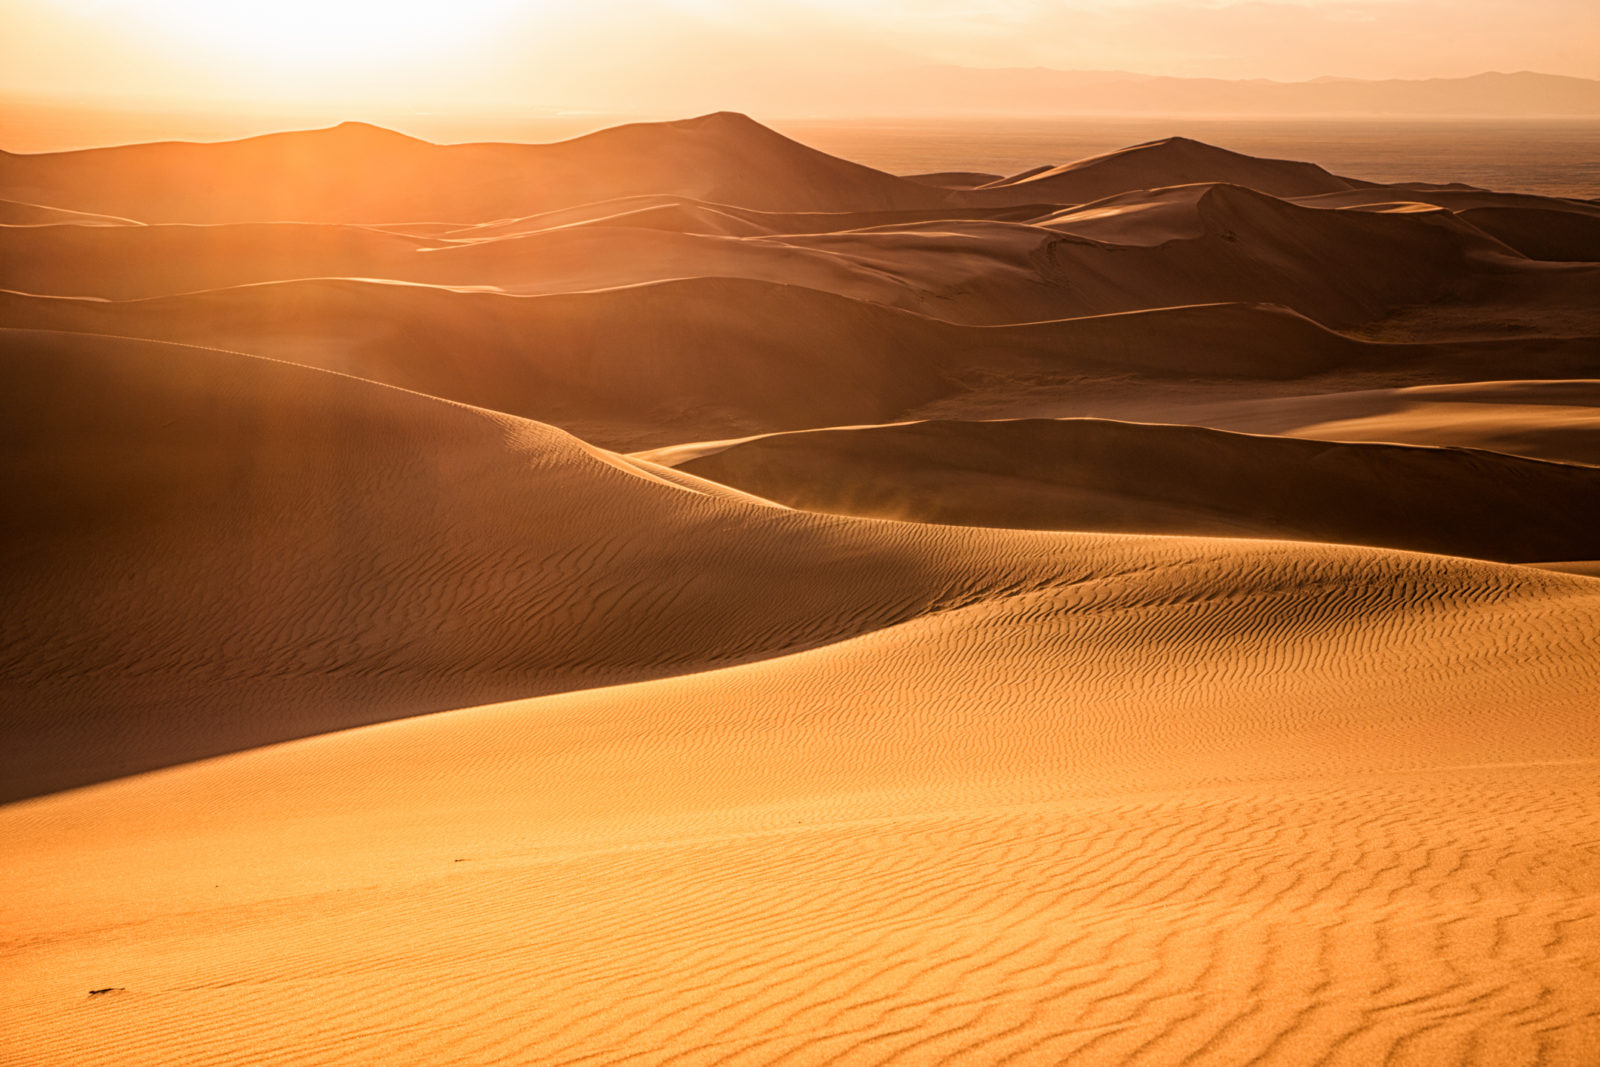 Whispers of Sand